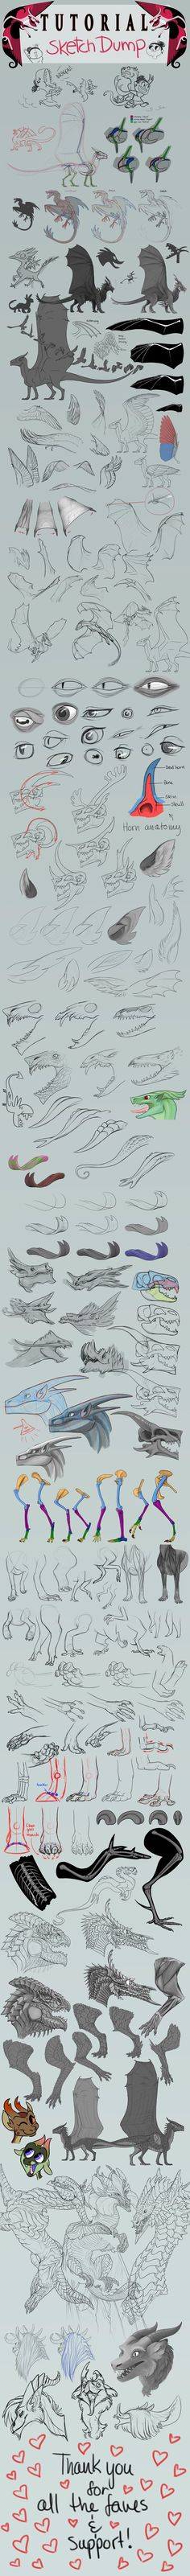 Some anatomy. Dragons resources! by SammyTorres